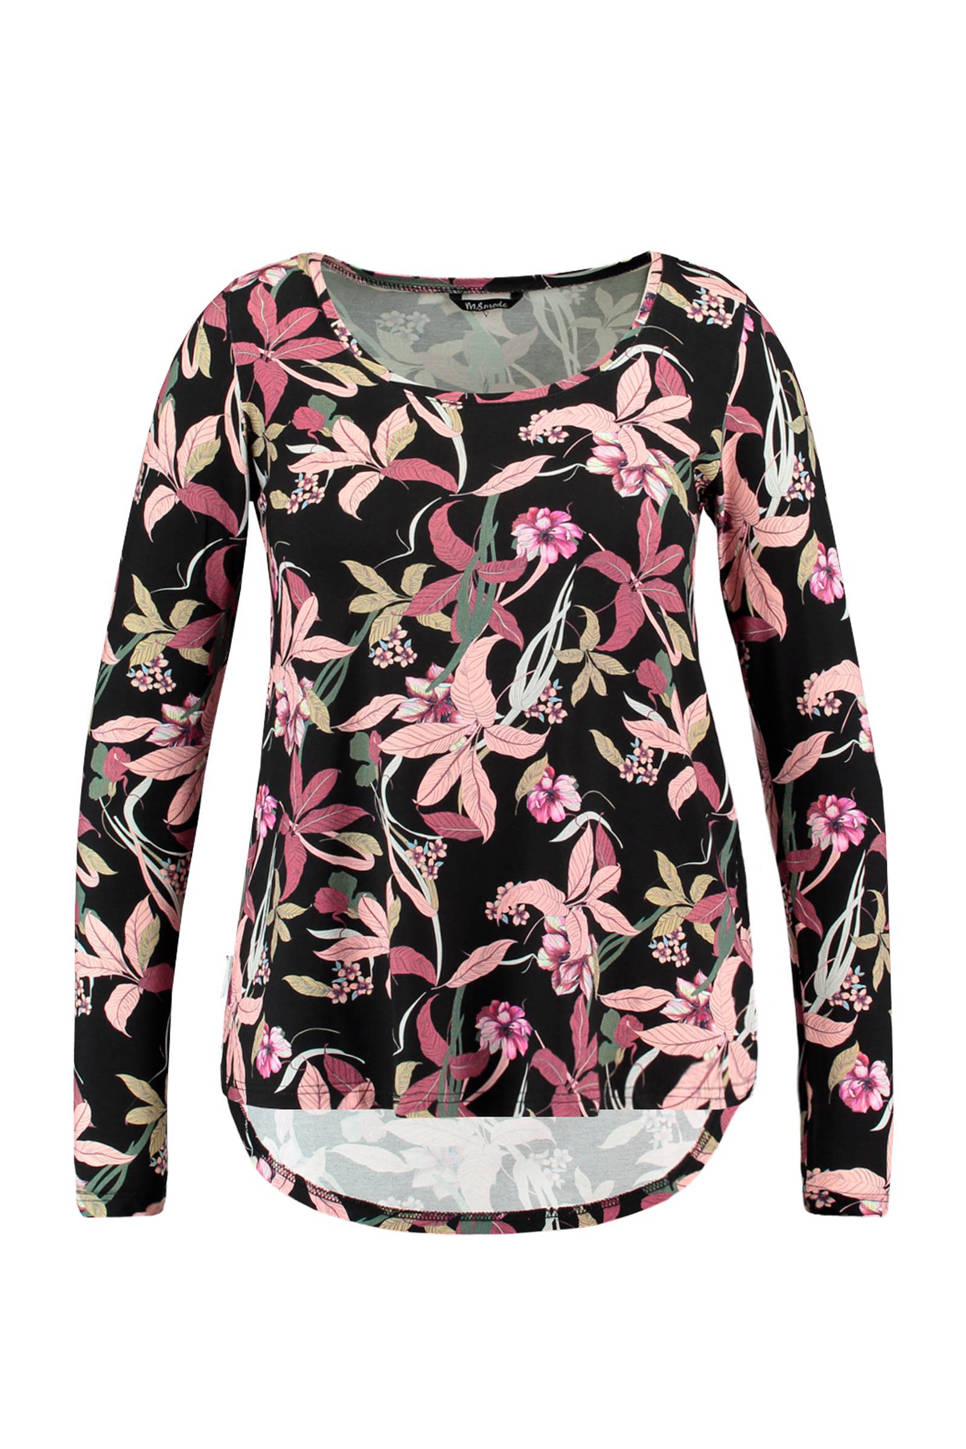 MS Mode longsleeve (dames), Zwart